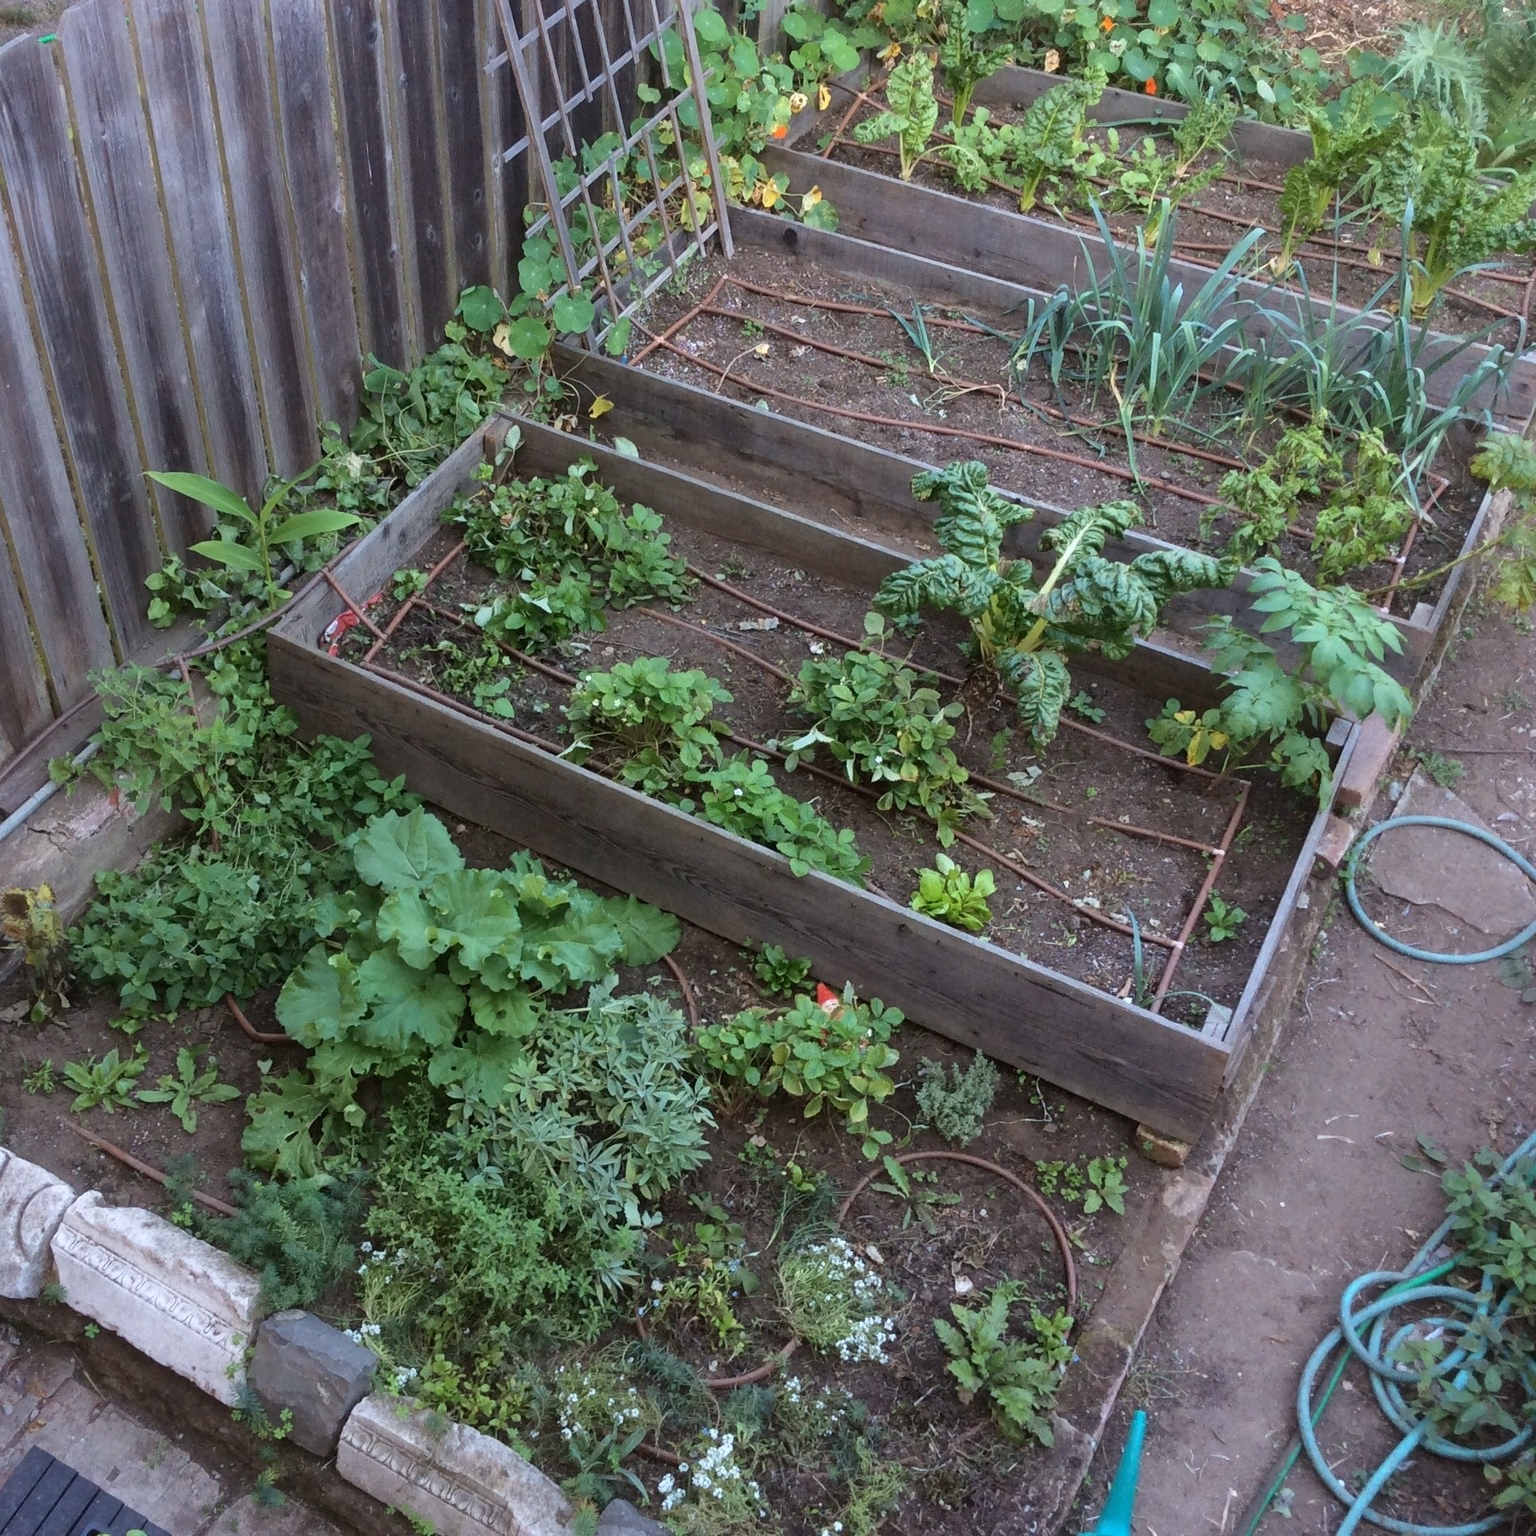 October 2015 - Between cutworms, Alcatraz, neglect, and poor planning, this month's garden is an uninspiring site.